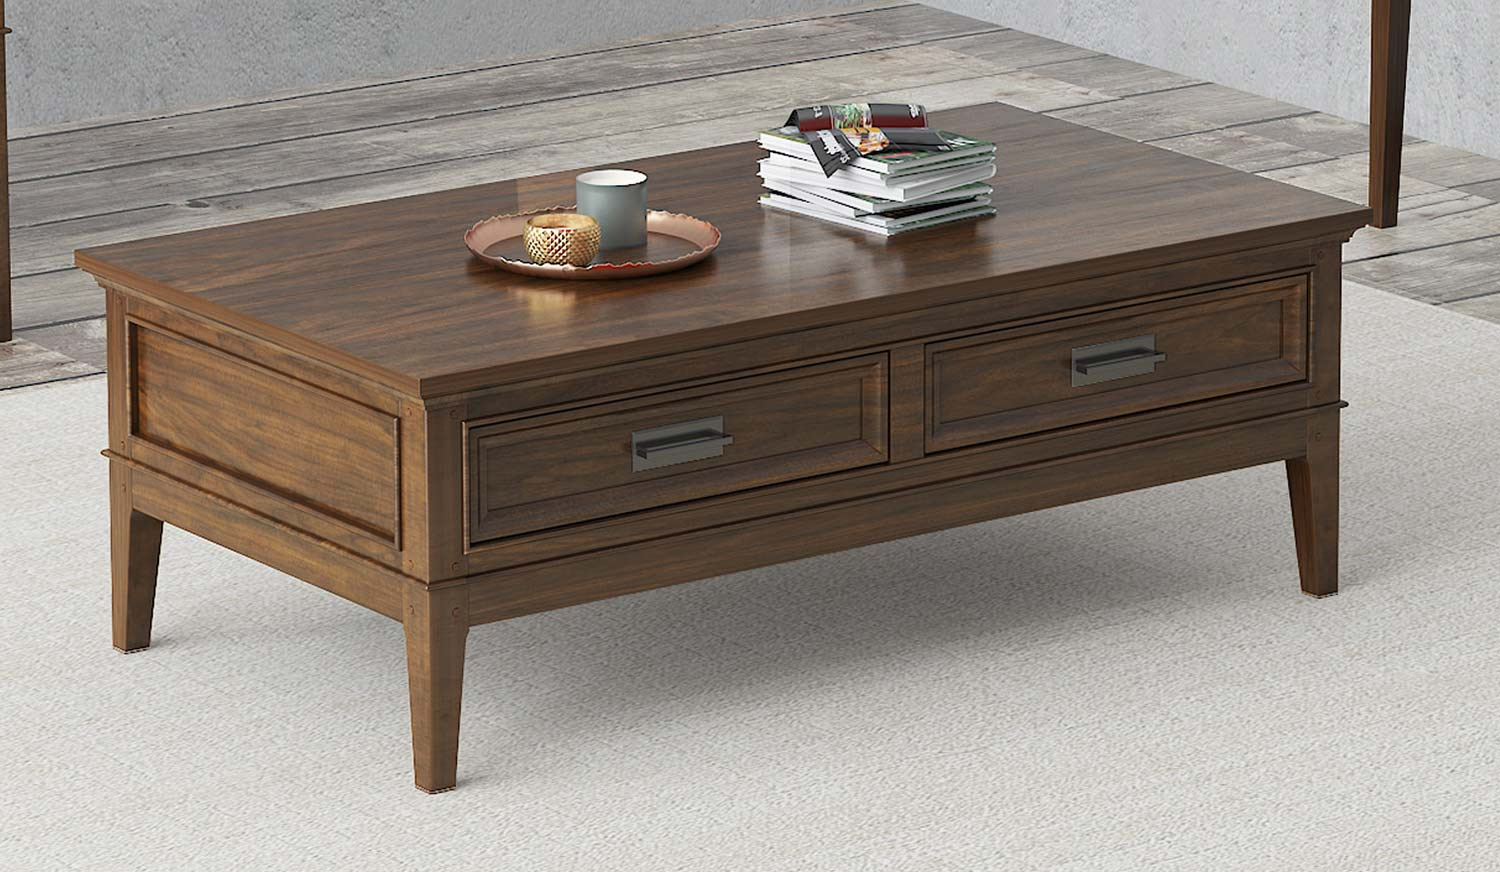 Homelegance Frazier Park Cocktail Table with Two Functional Drawers - Brown Cherry